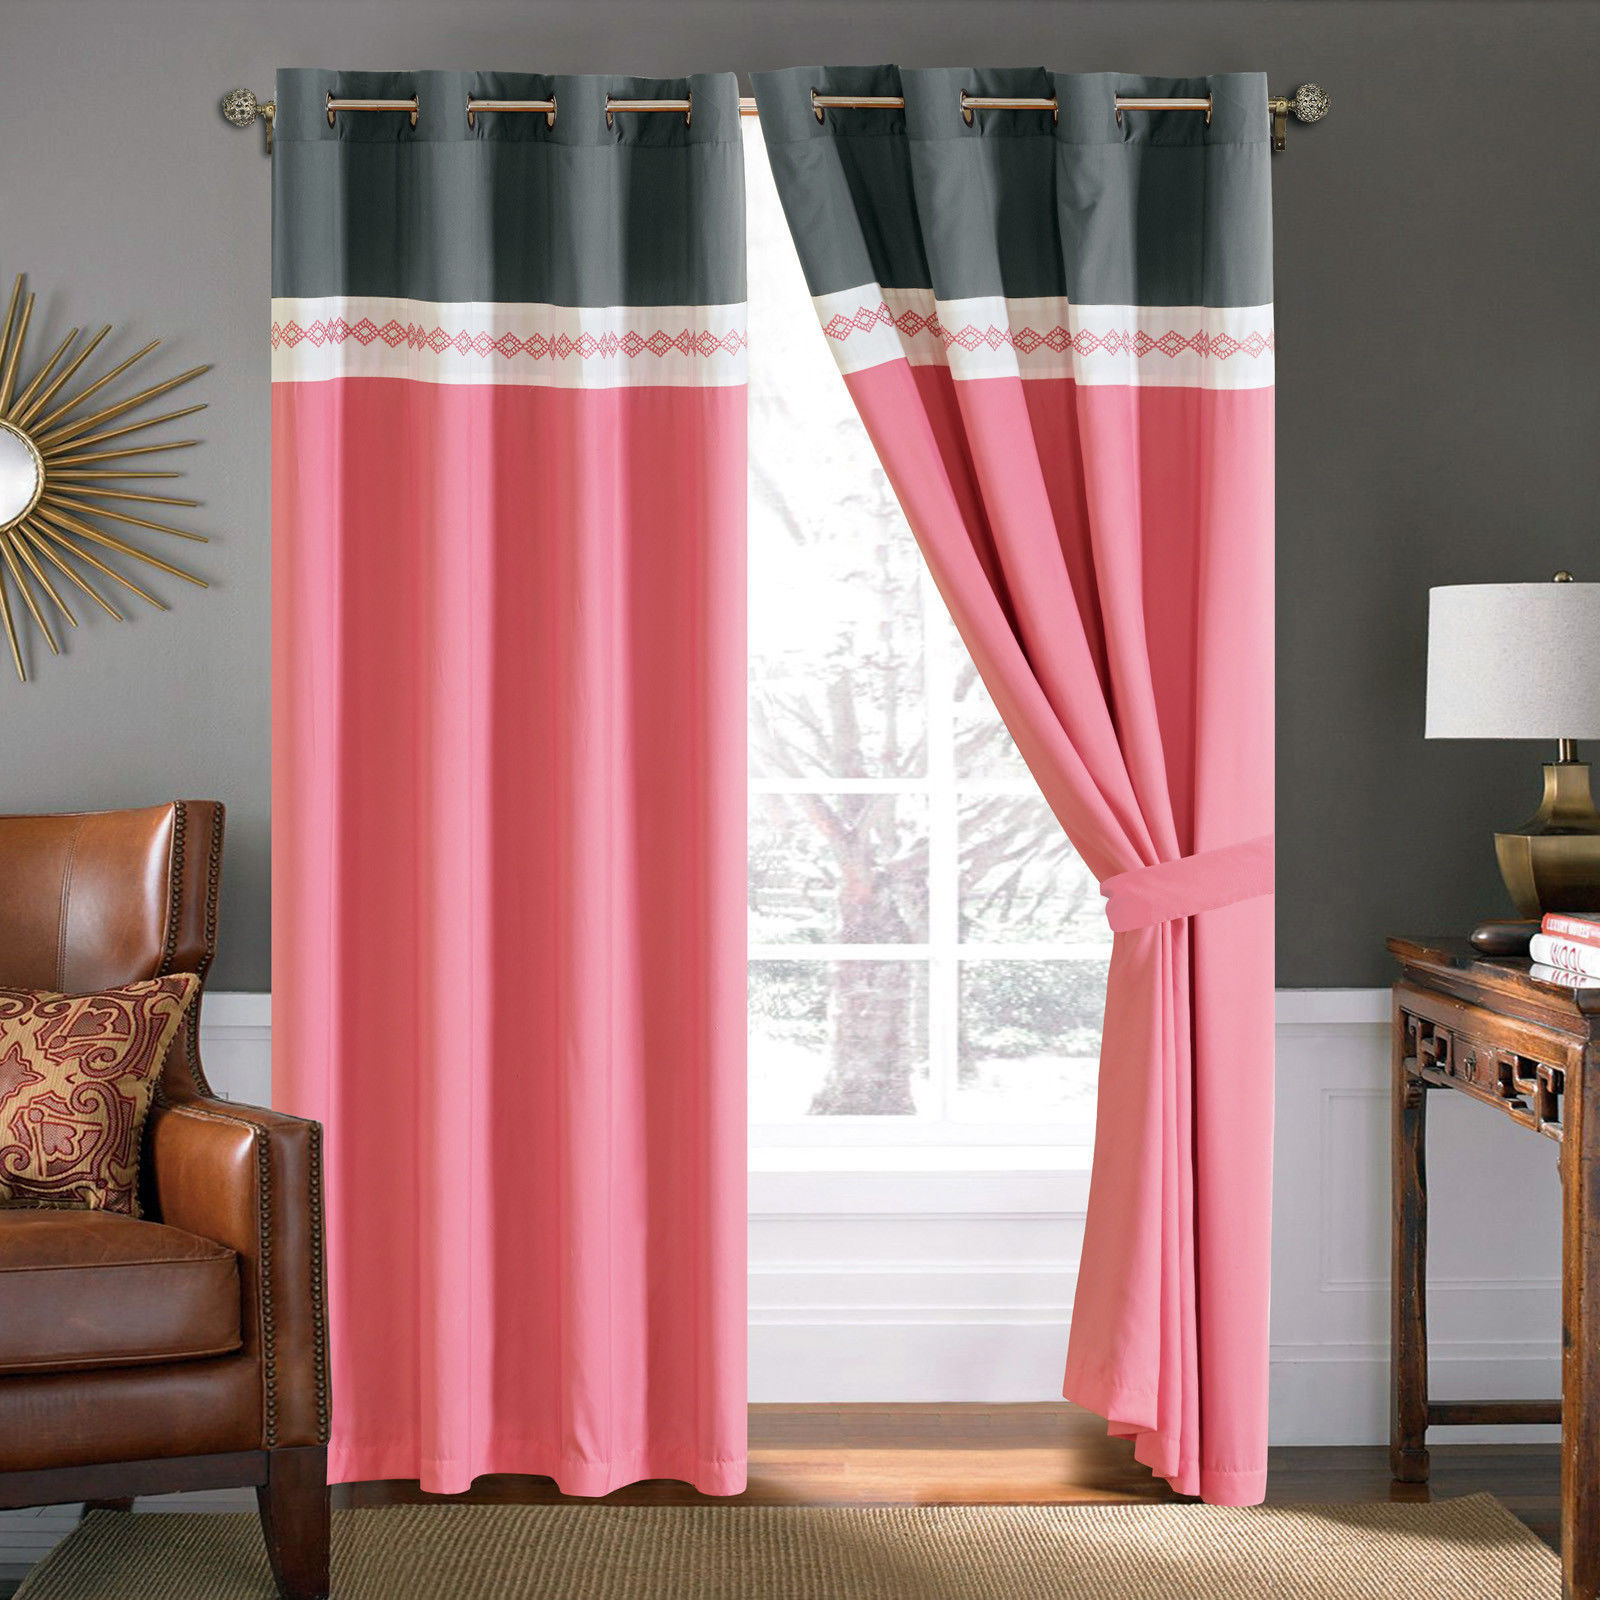 Primary image for 4-Pc Diamond Ornate Damask Embroidery Curtain Set Pink Gray Ivory Sheer Liner